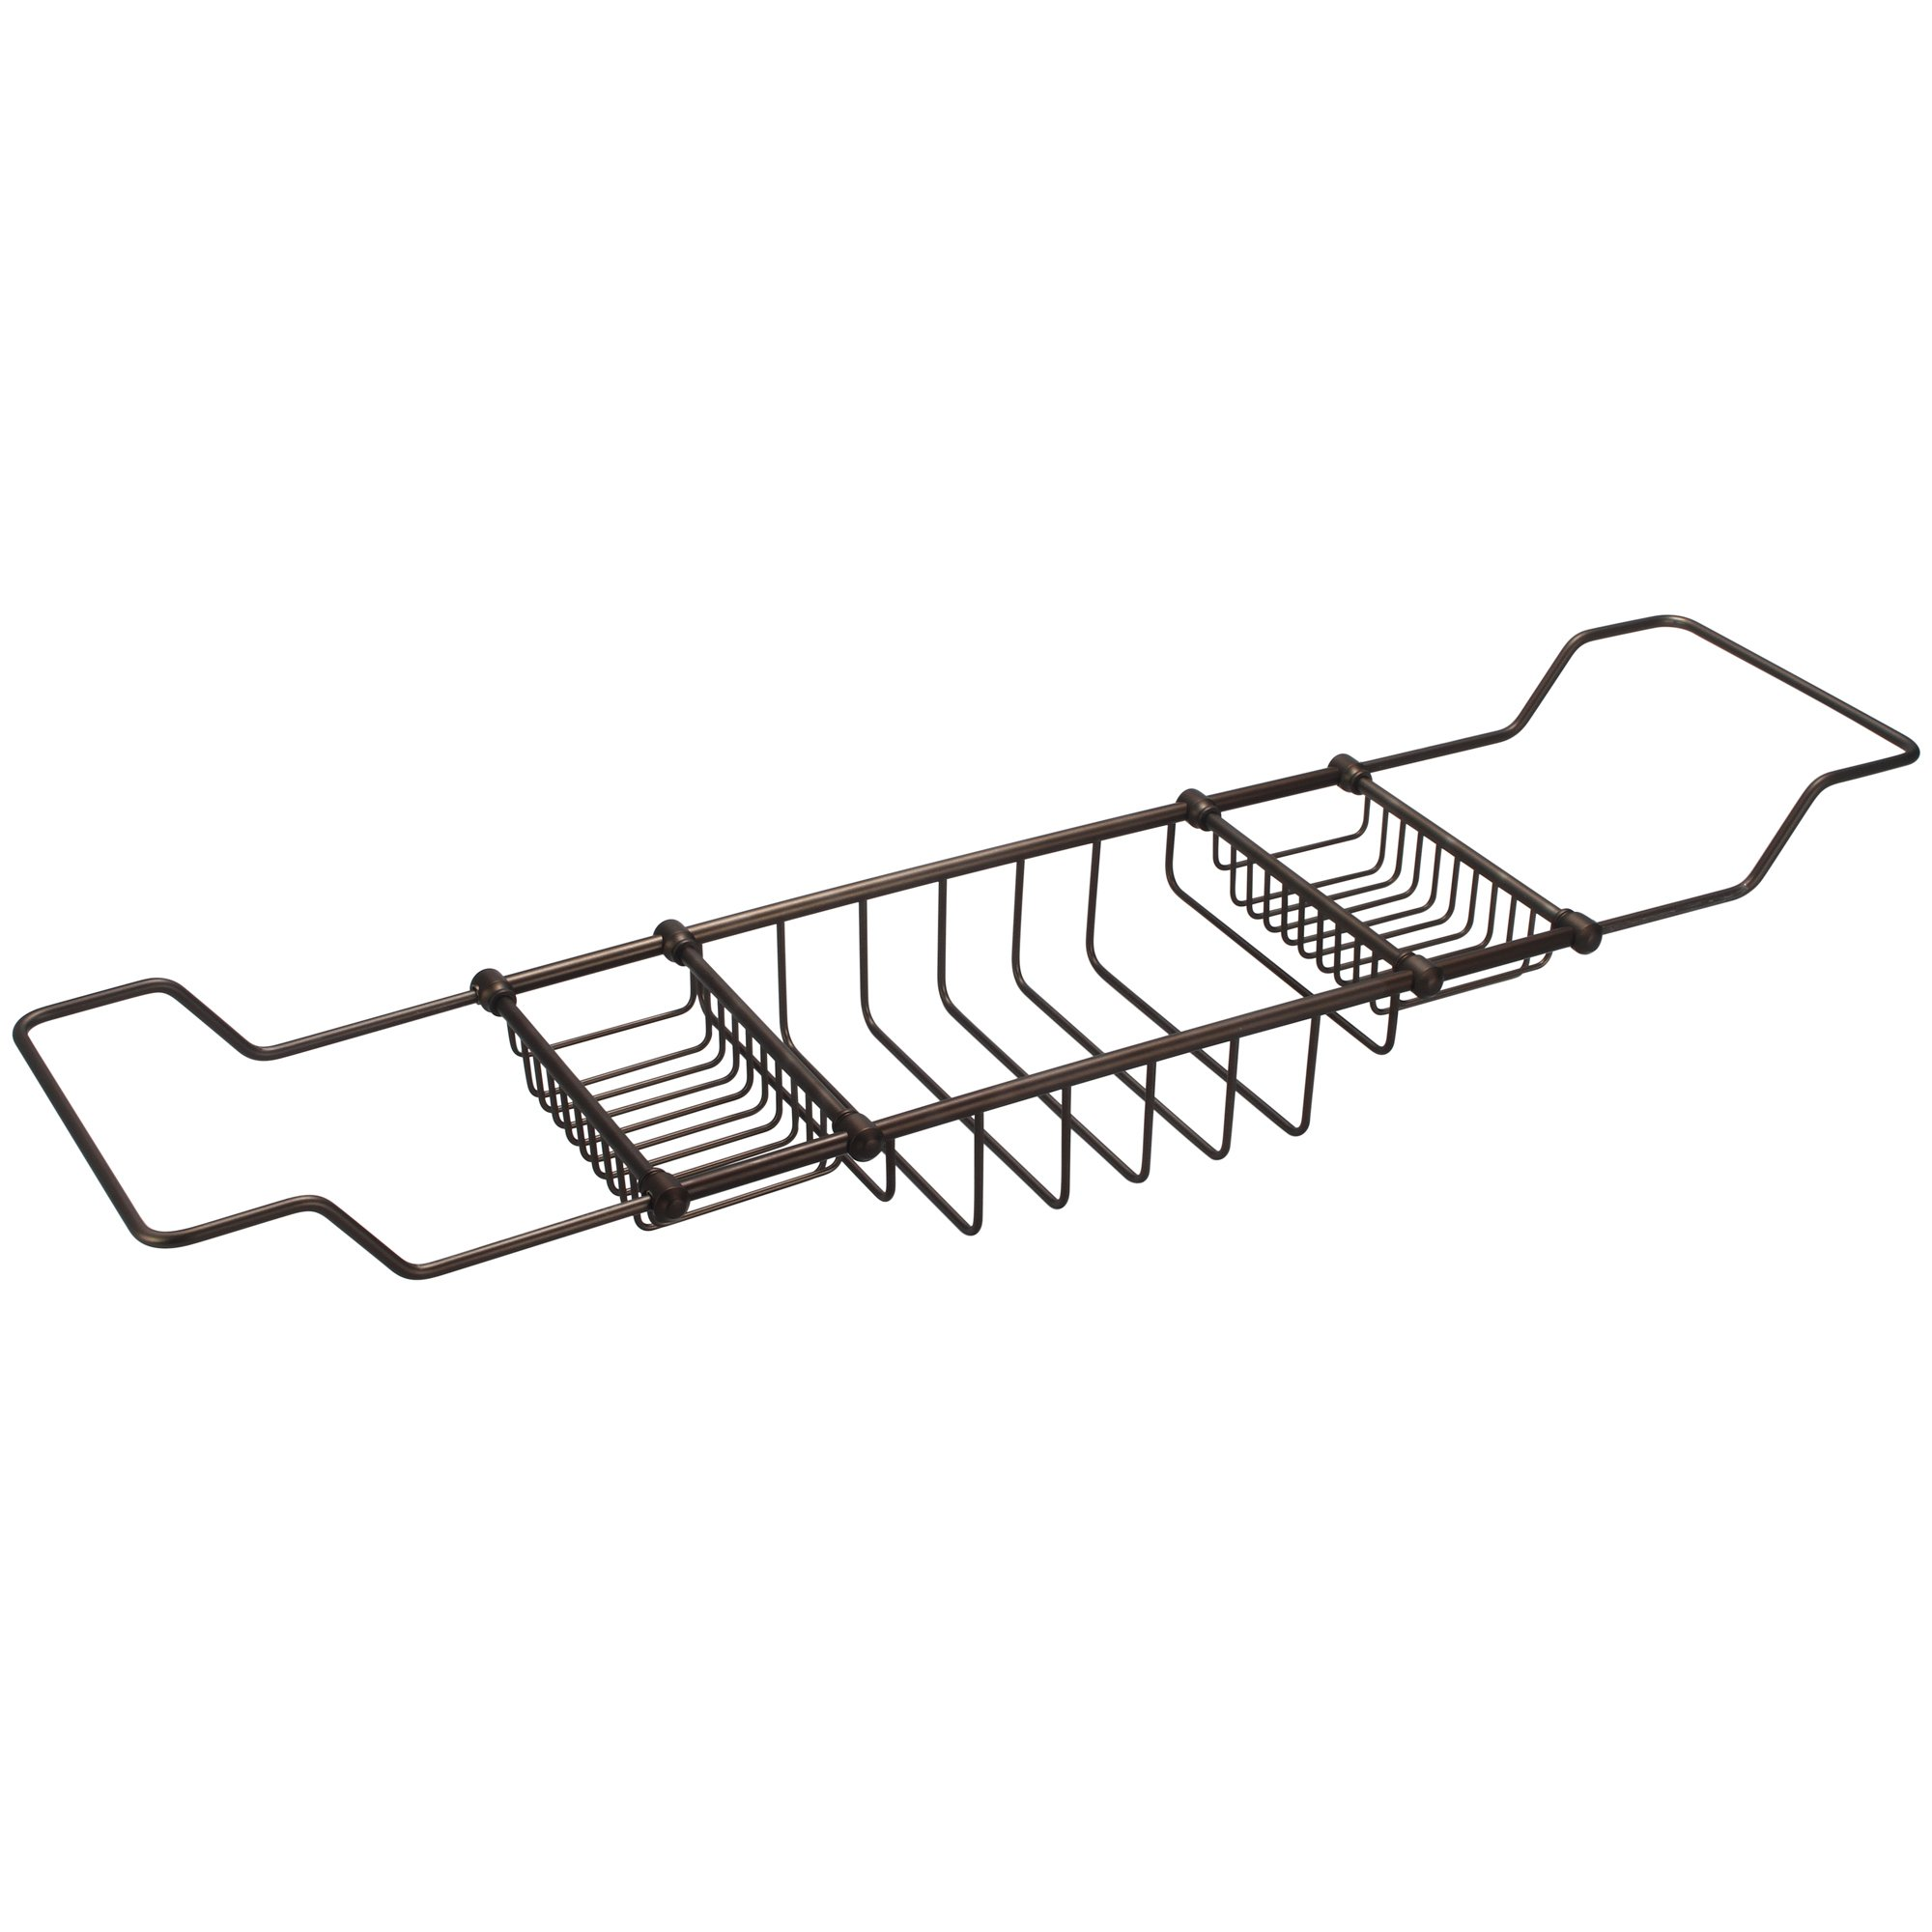 Water Creation BC-0001-03 Expandable Bath Caddy for The Elegant Tub